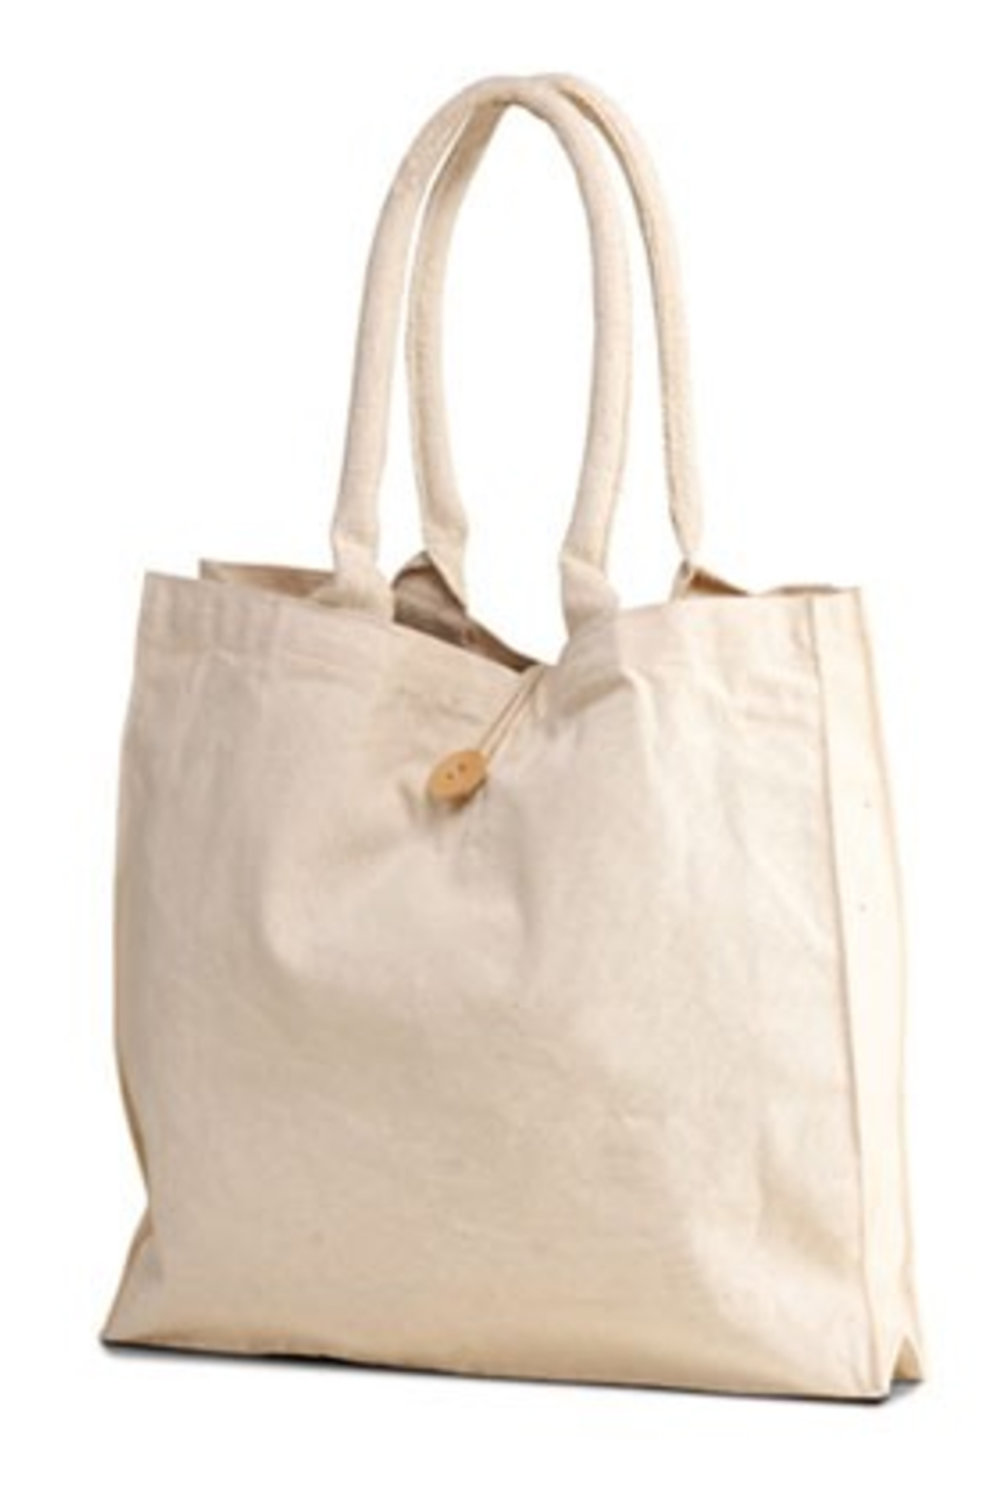 Cotton Canvas Tote - Blank - $14 / w/ Logo - $1925 Bag Minimum